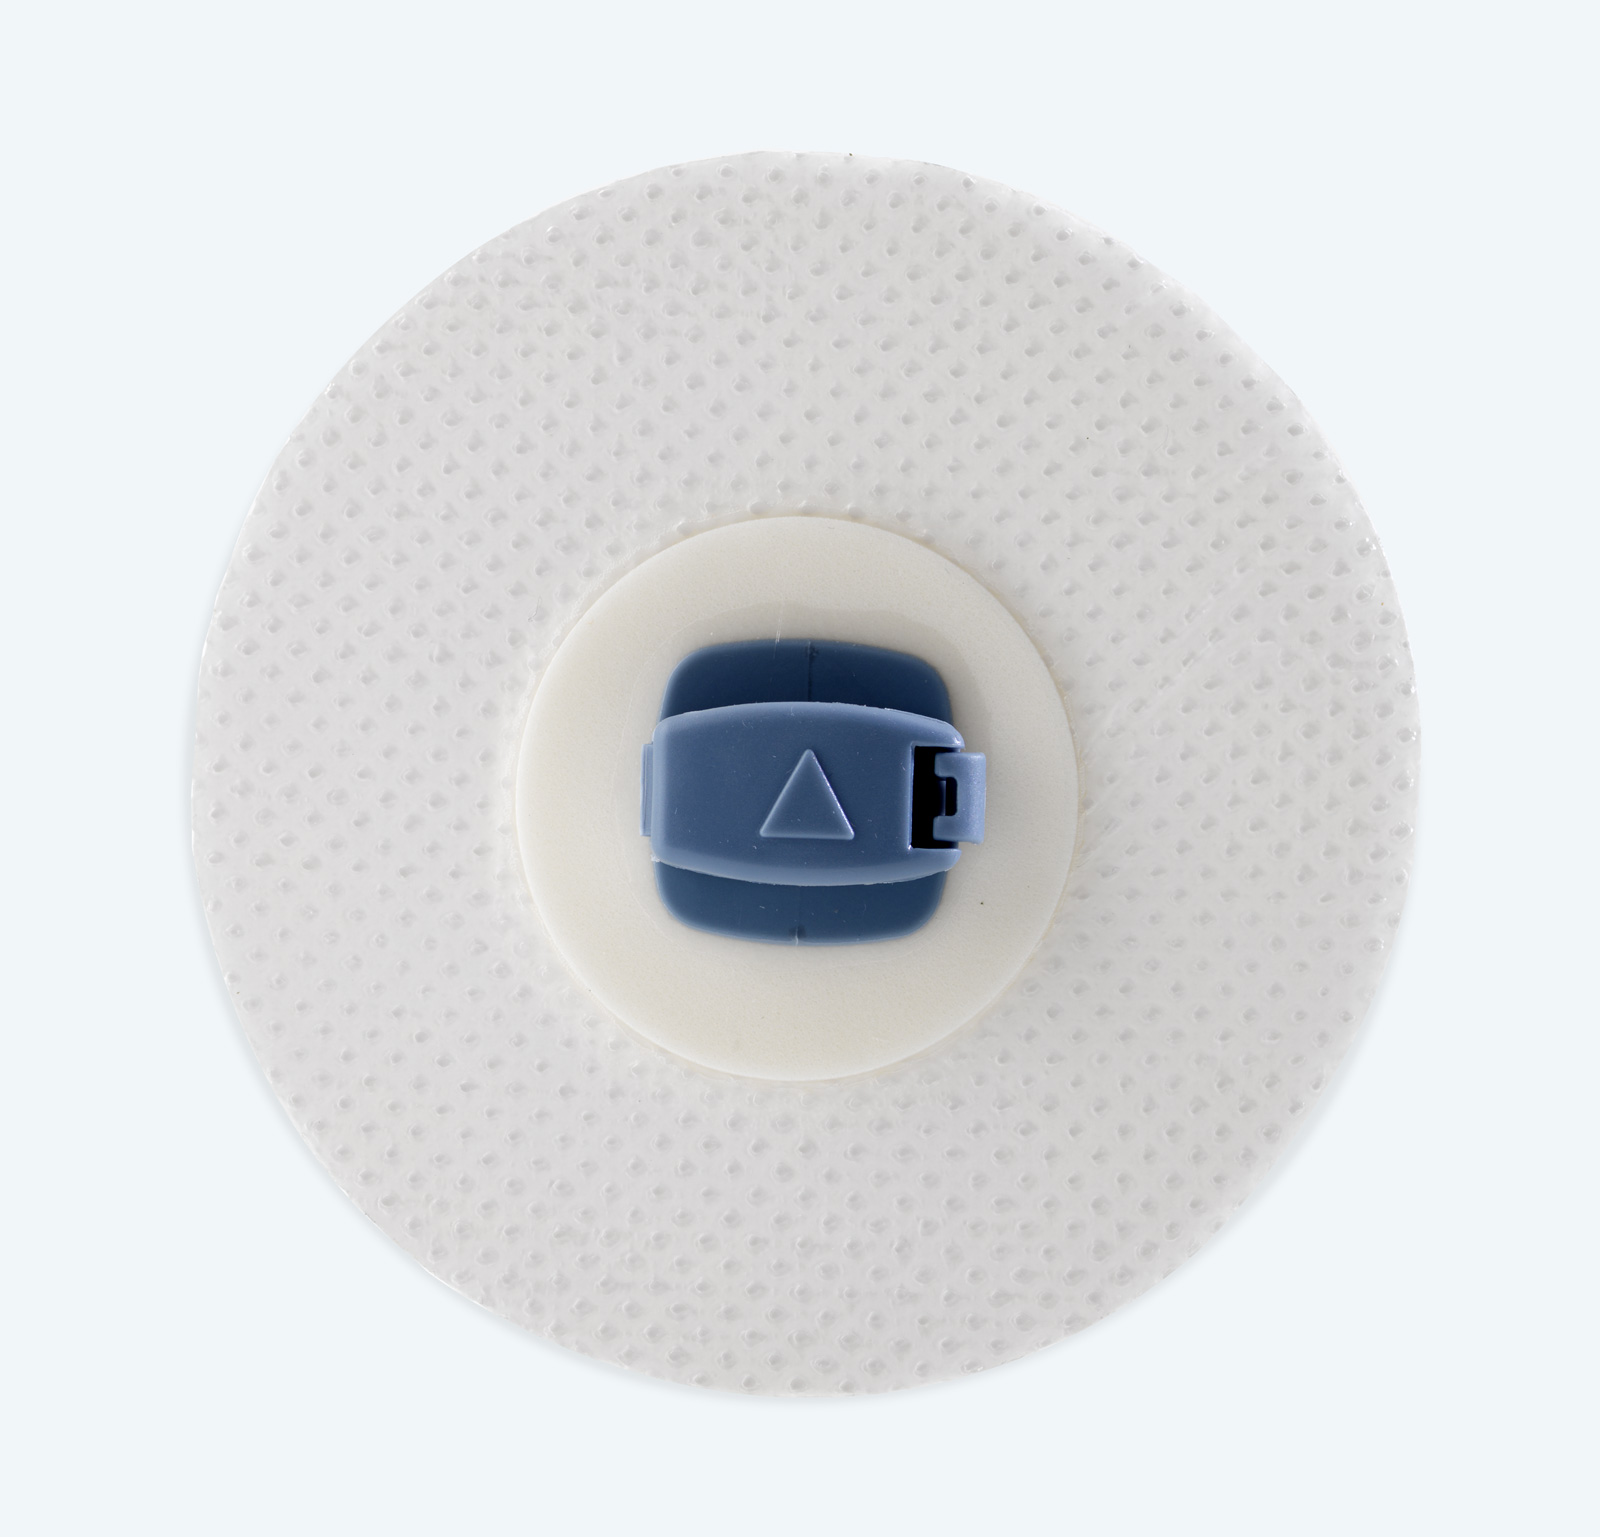 Ugo Fix Gentle (catheter clip)